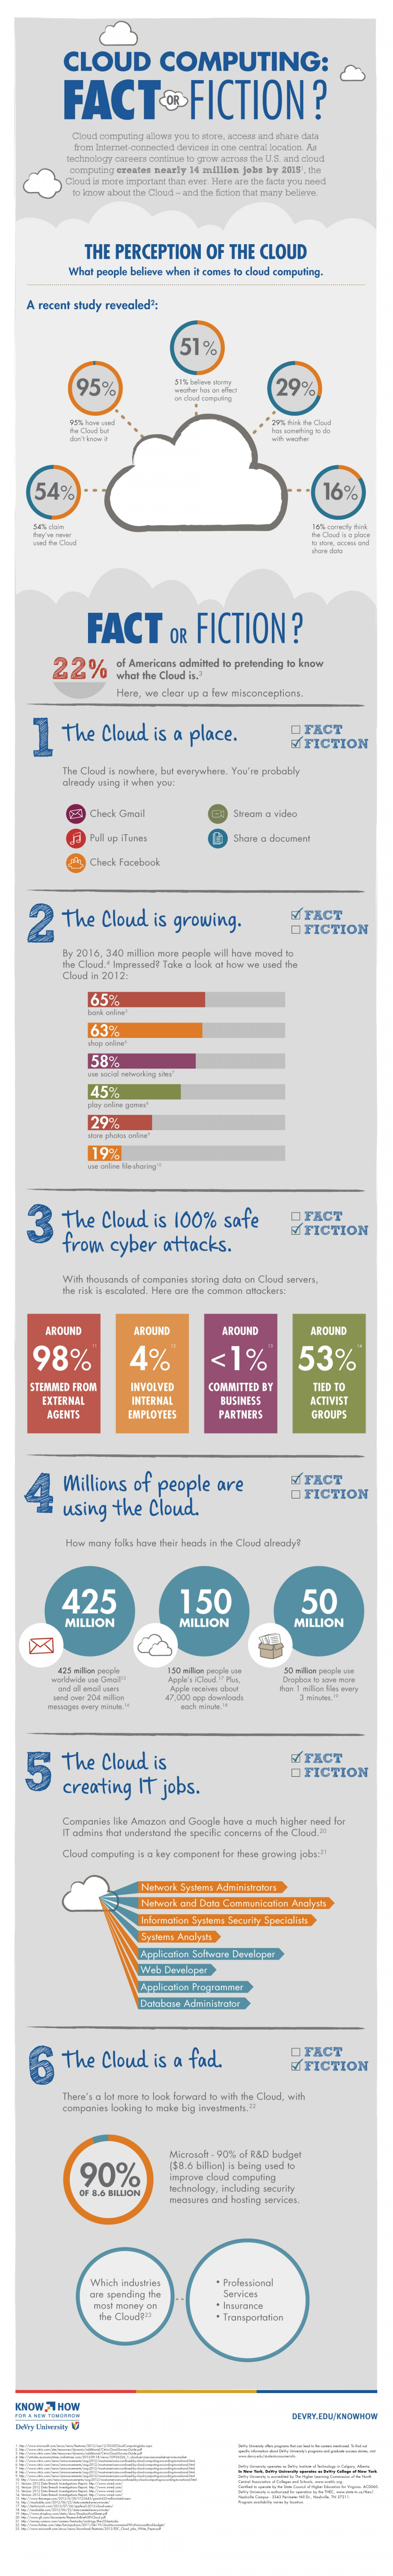 Cloud computing: fact or fiction? (Infographic)